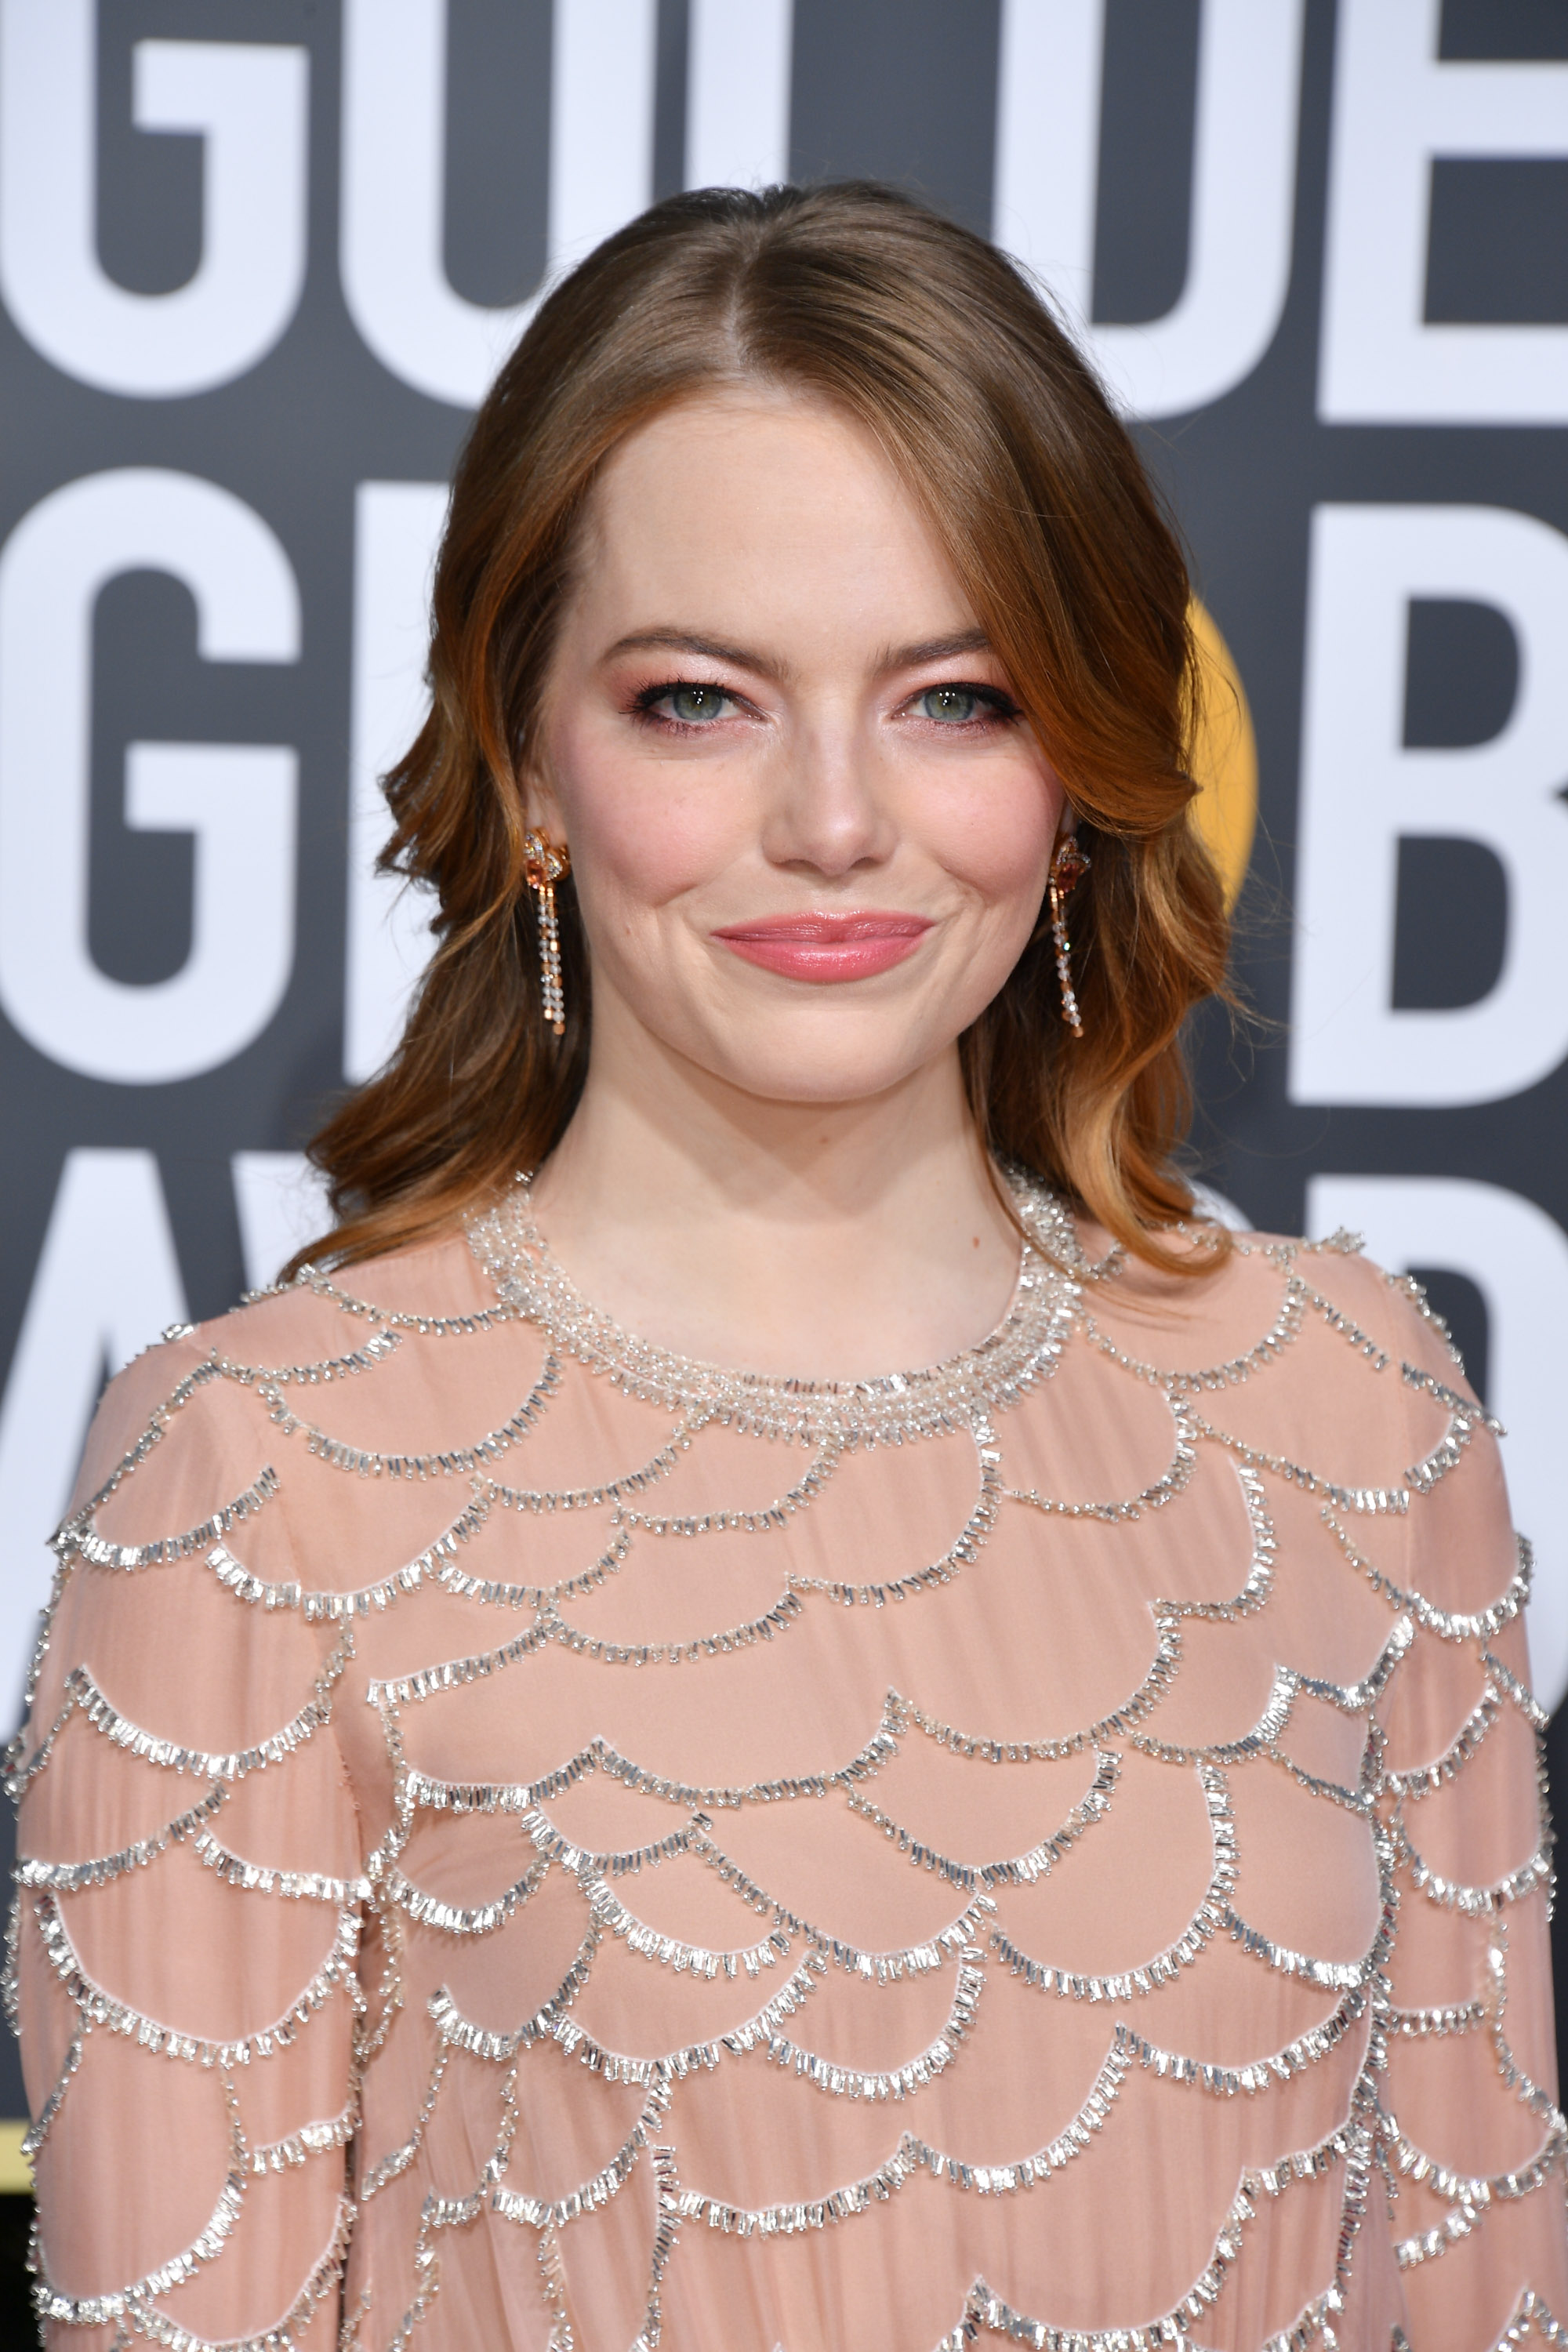 Emma Stone Debuted Dark Brown Hair, And She Looks Like Snow White - HelloGiggles